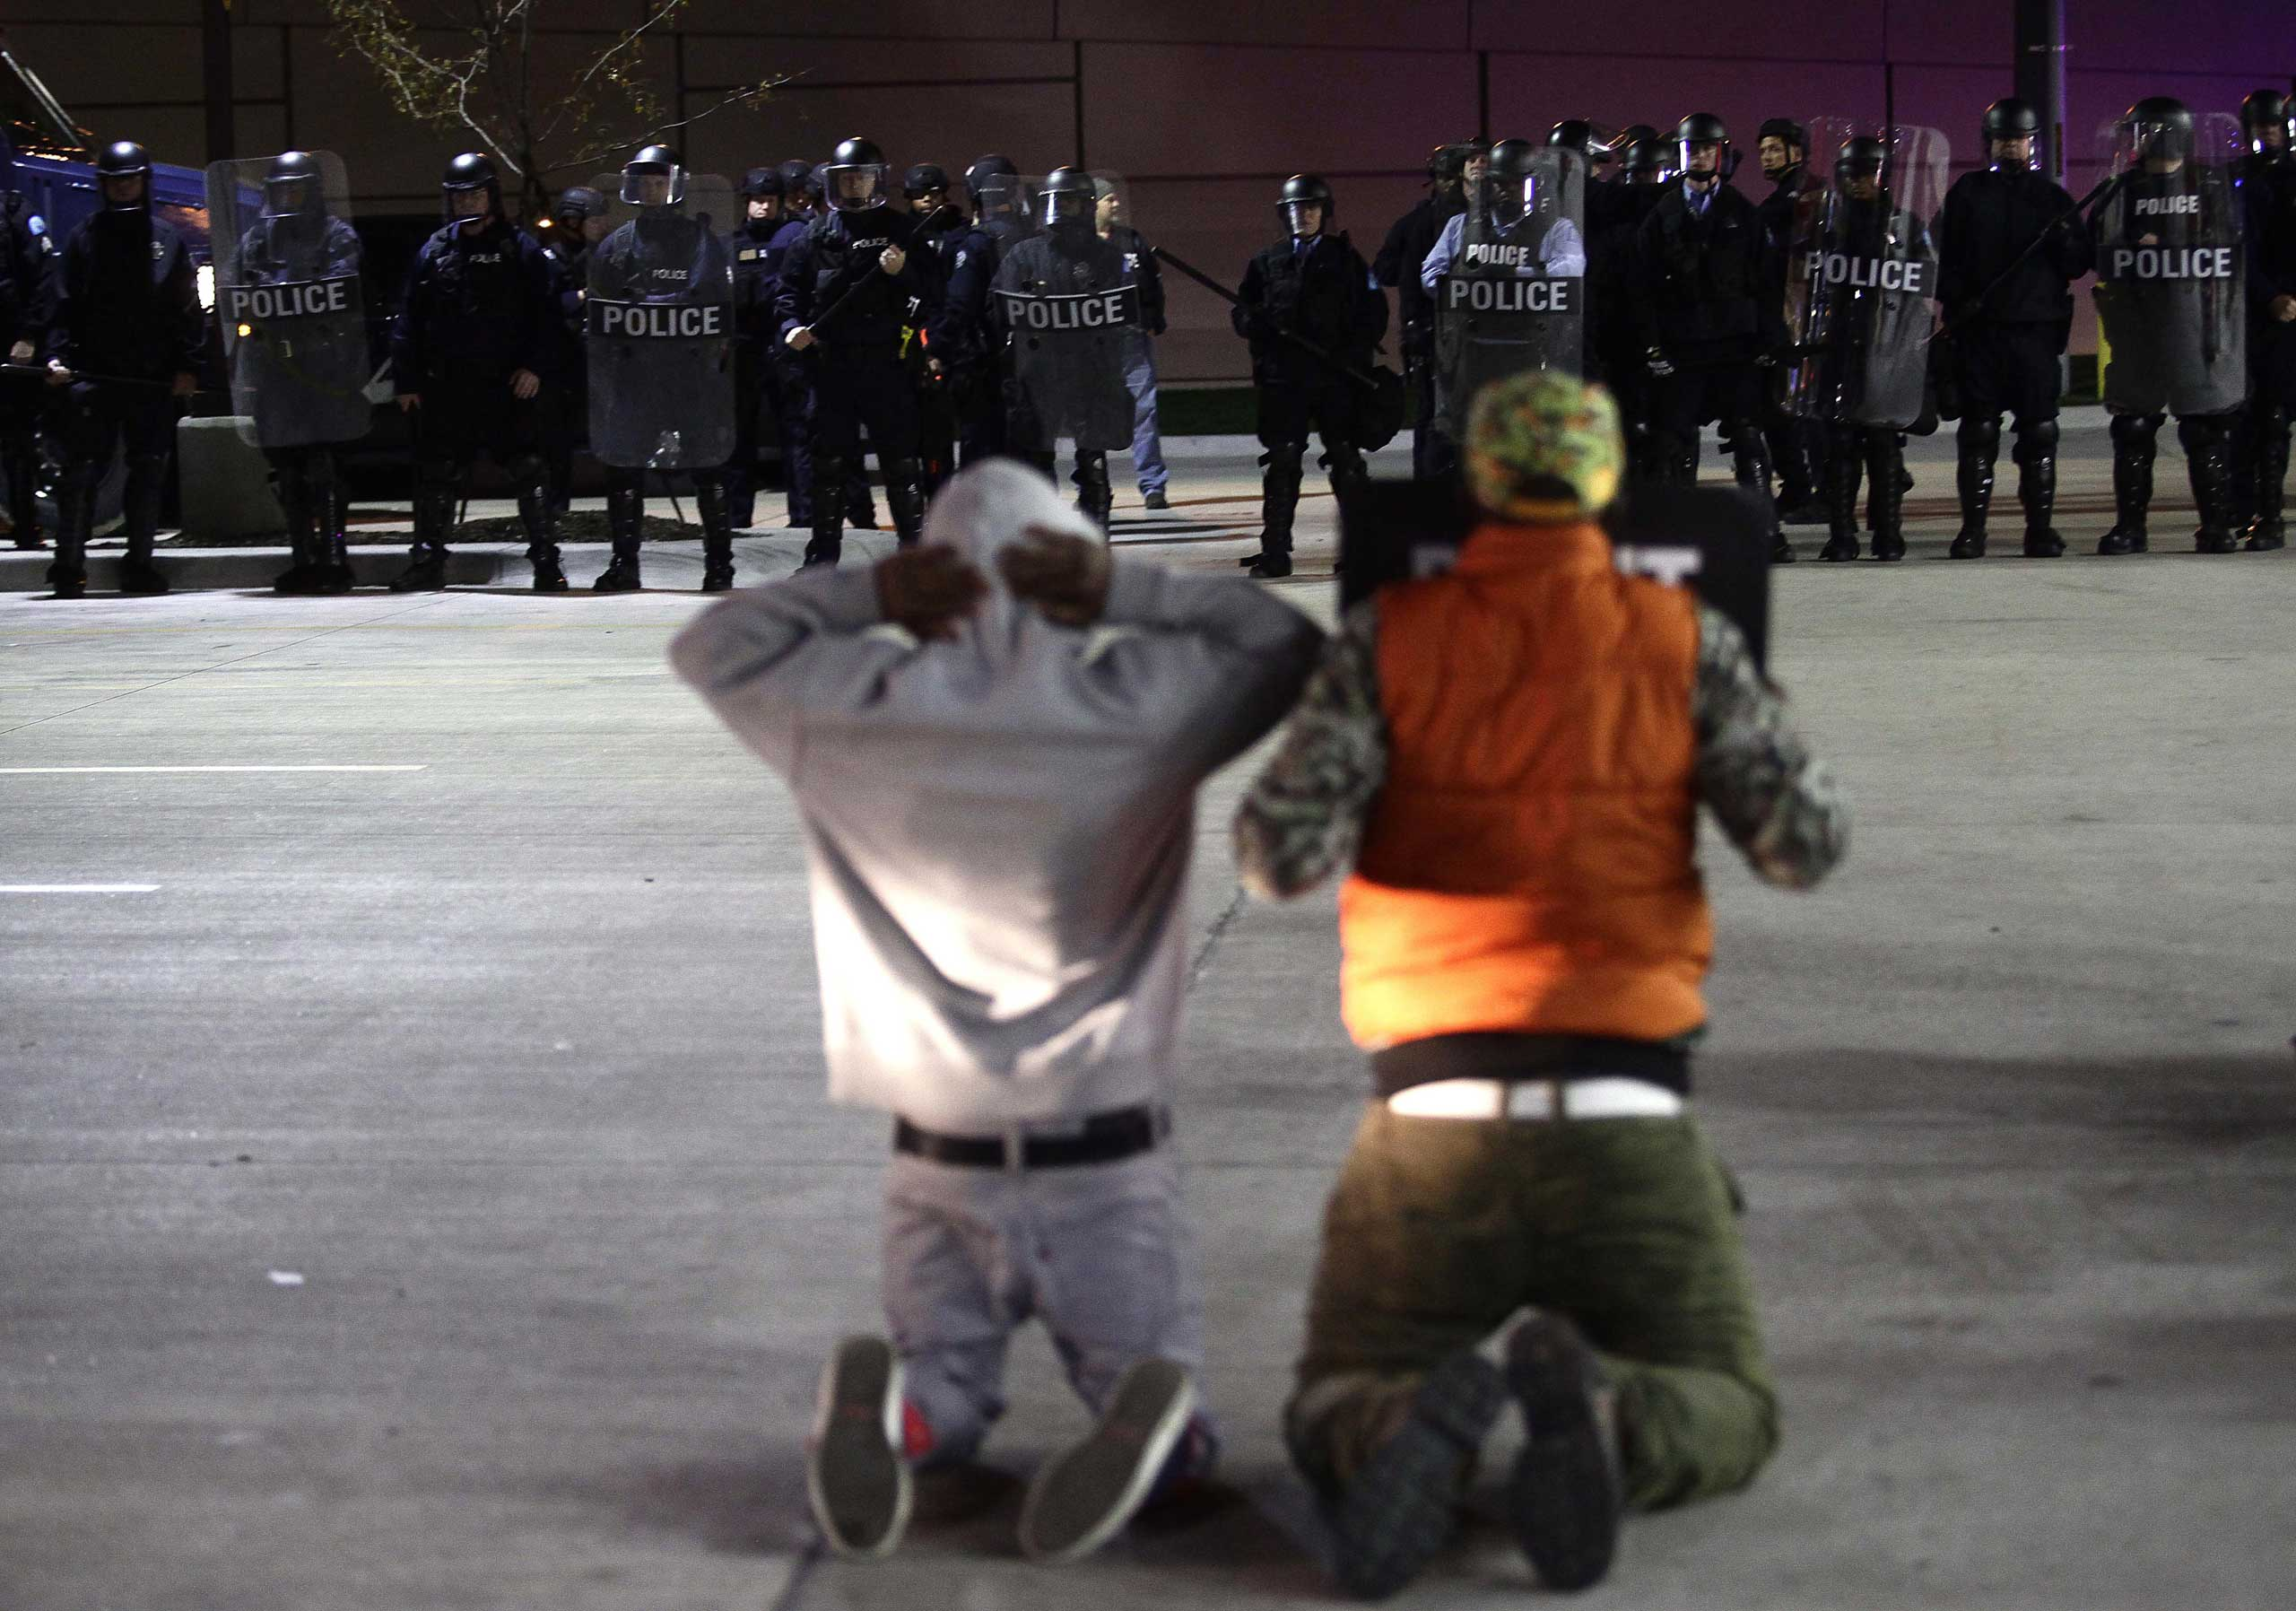 Demonstrator protesting the shooting death of Michael Brown and Vonderrit Myers Jr. kneel as they face police officers in riot gear in St. Louis on Oct. 12, 2014.